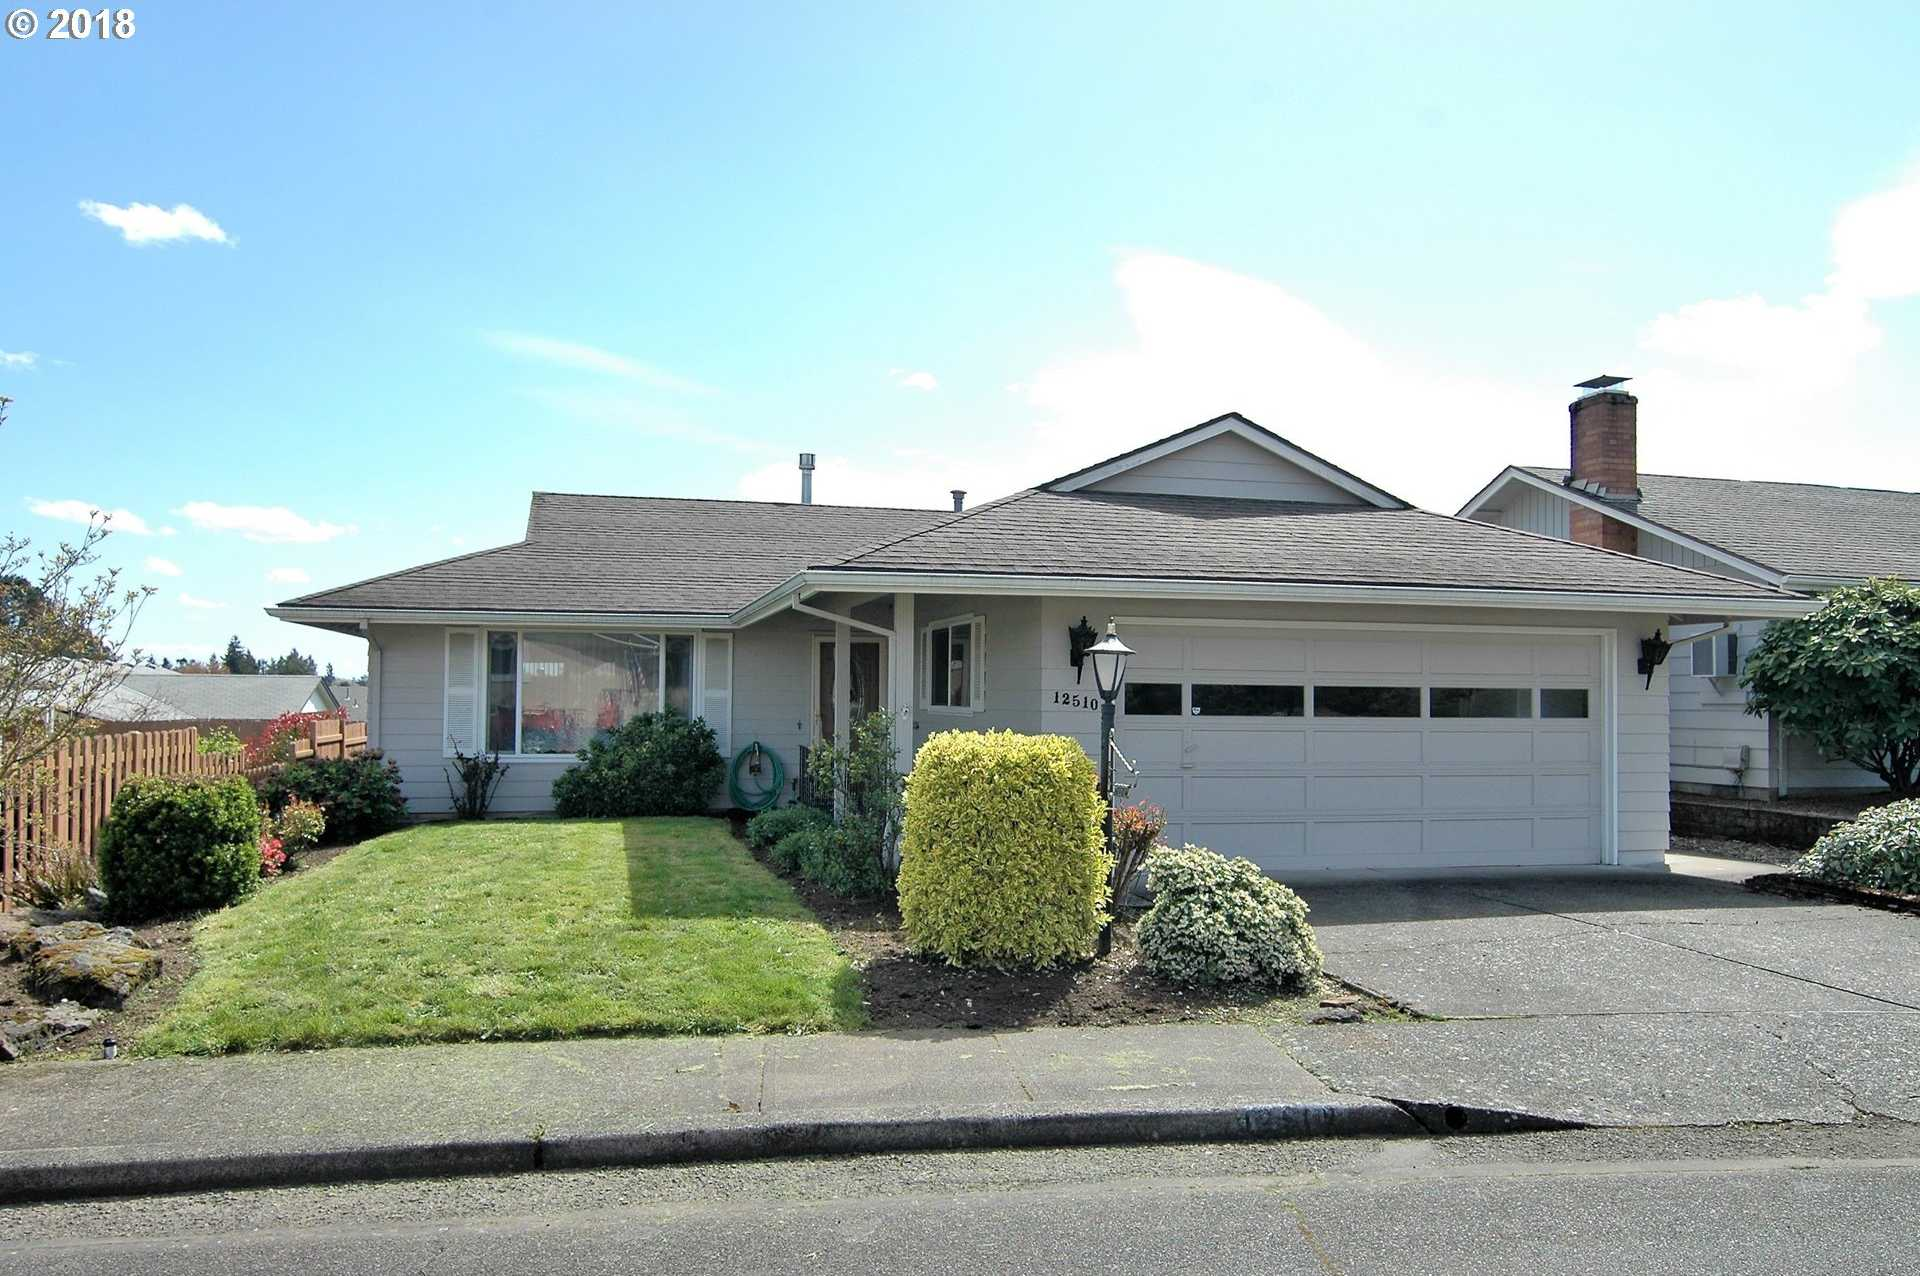 $299,000 - 2Br/2Ba -  for Sale in King City, King City